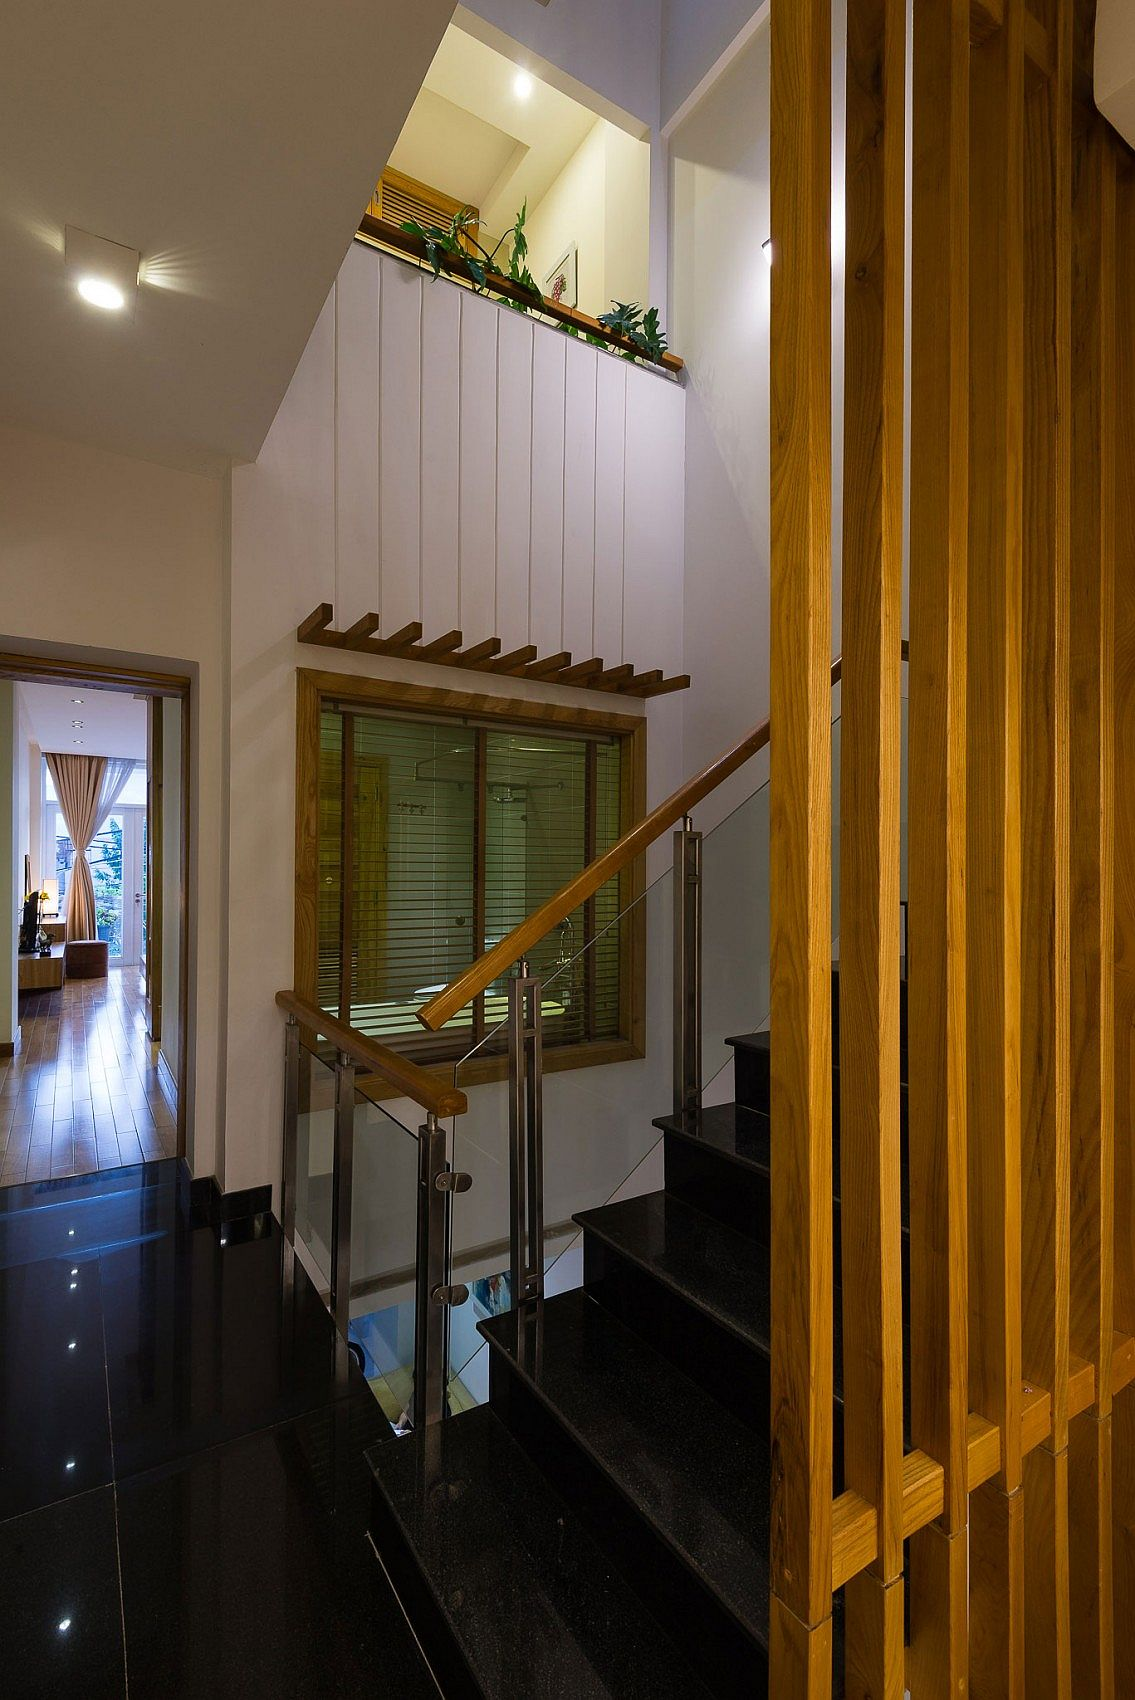 Light well next to the brings illuminates the various levels of the narrow home